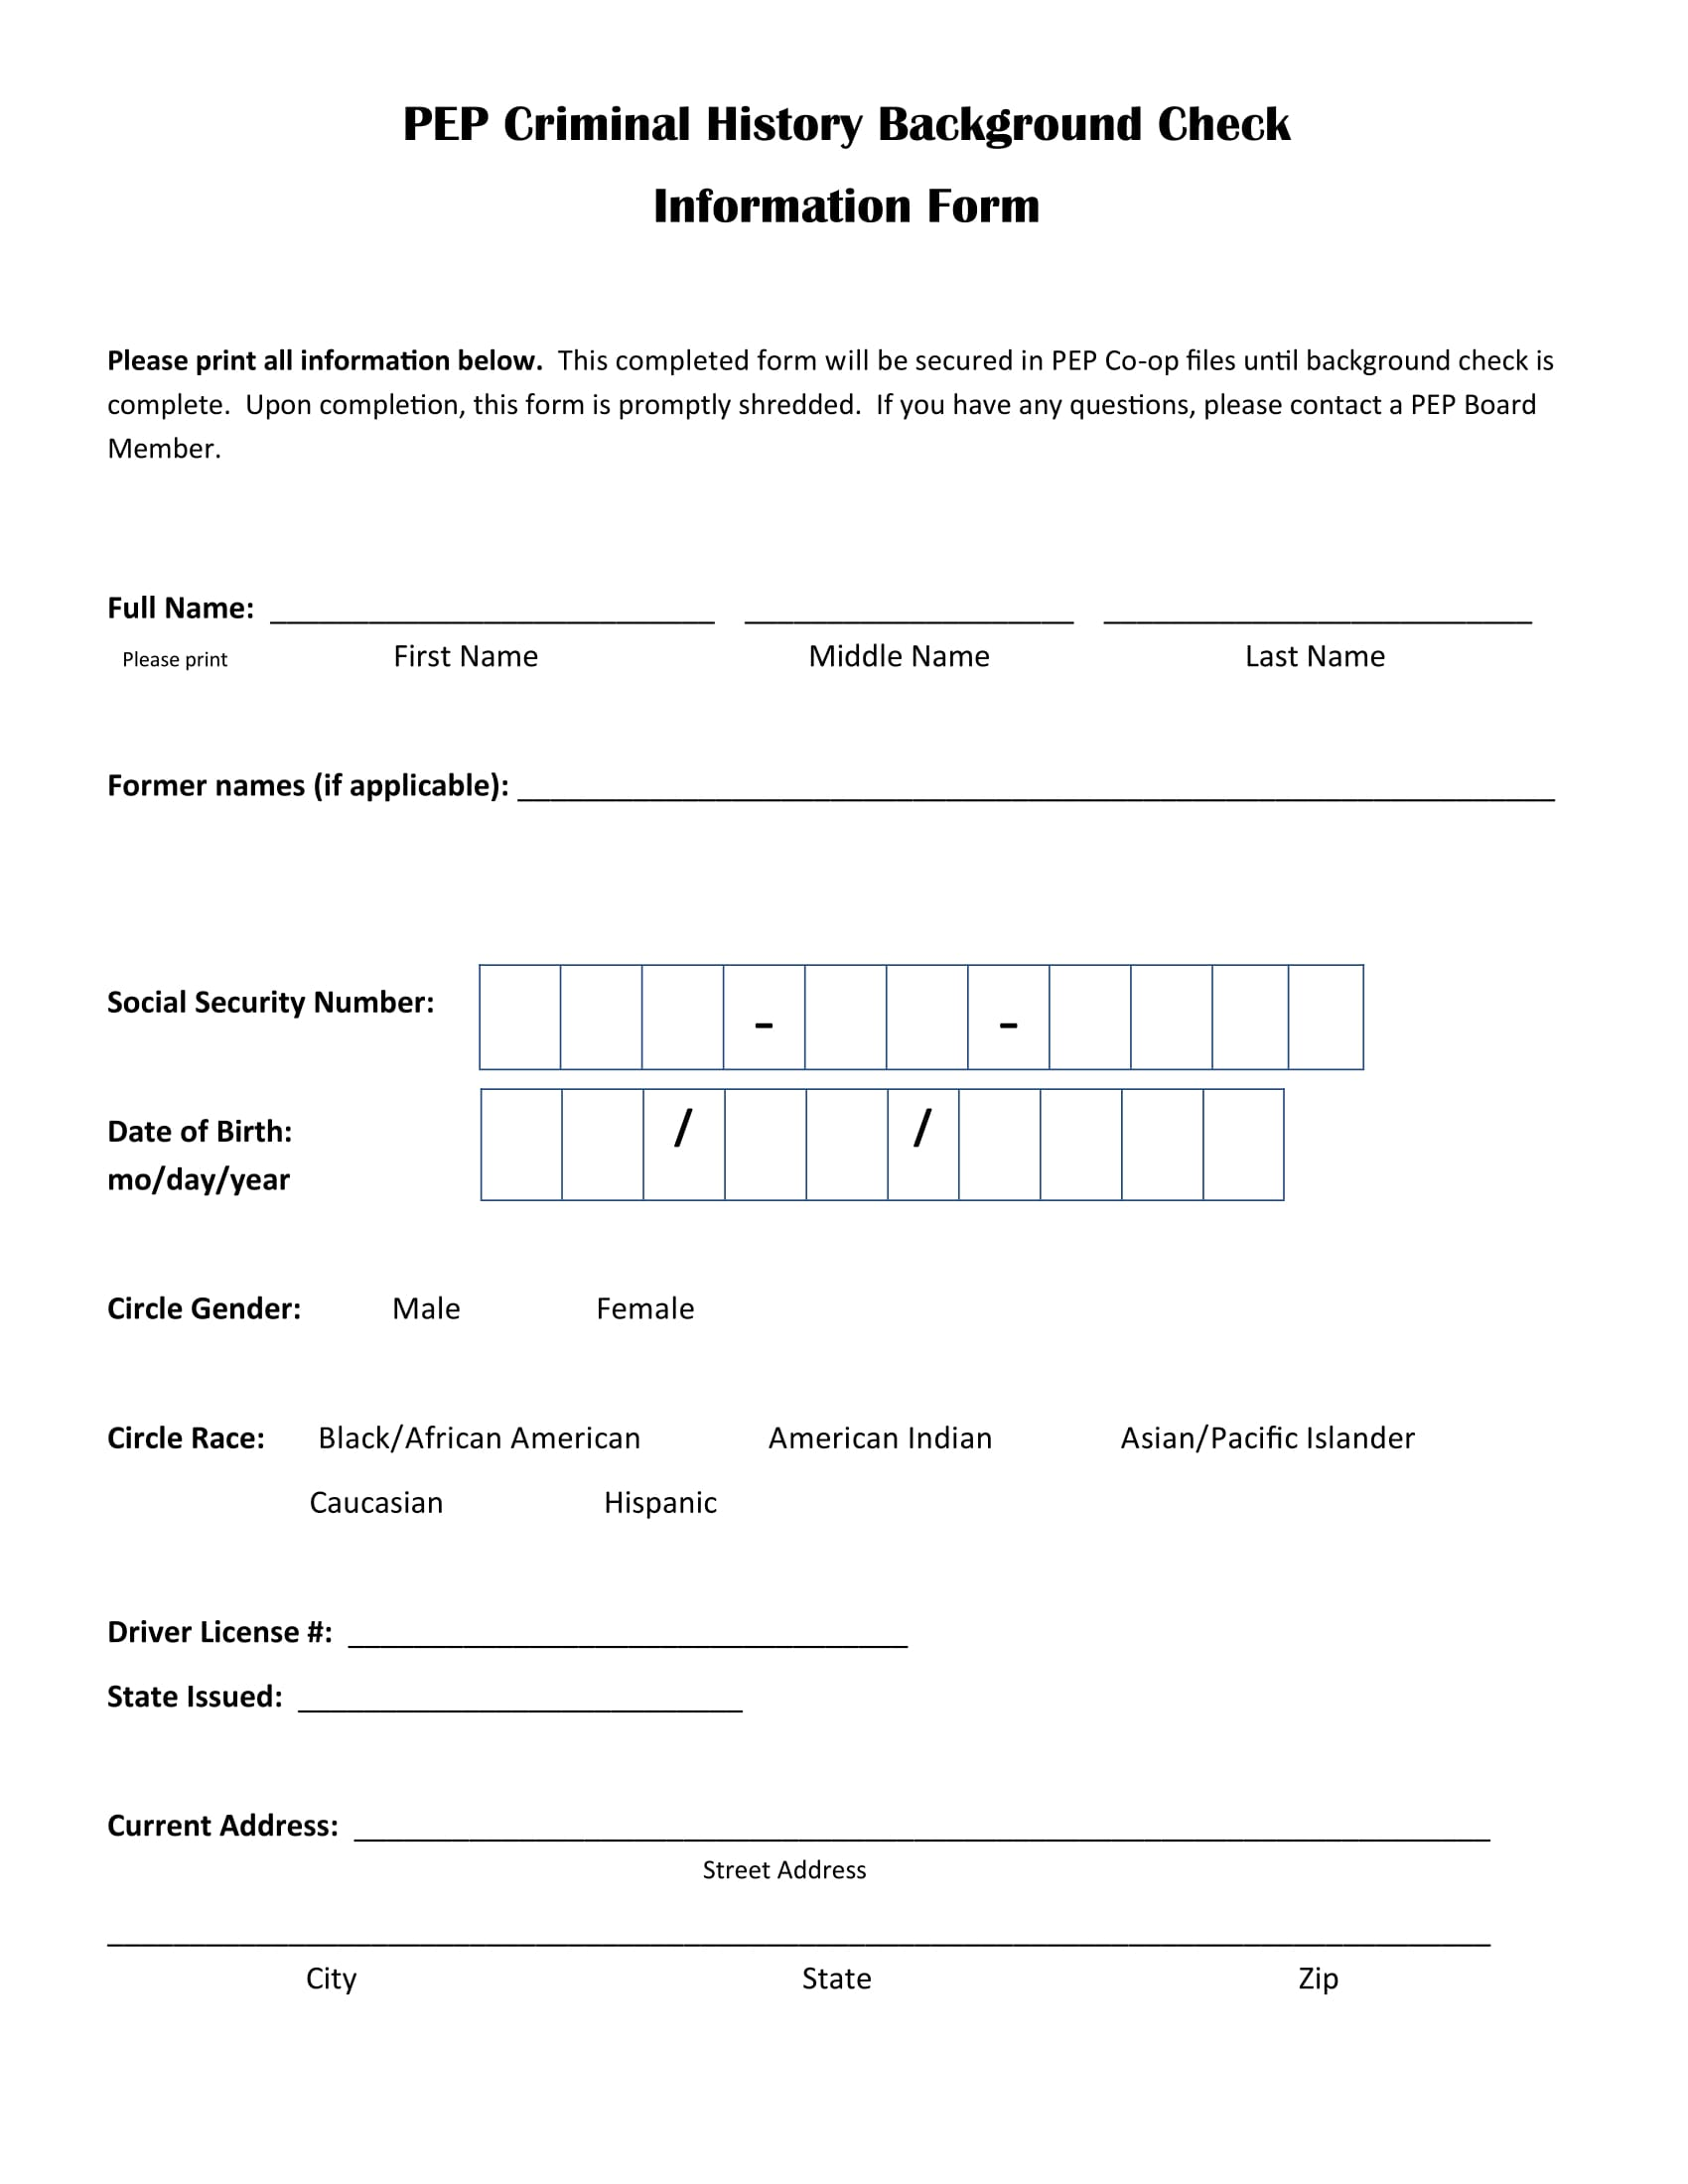 criminal history background check information form 2